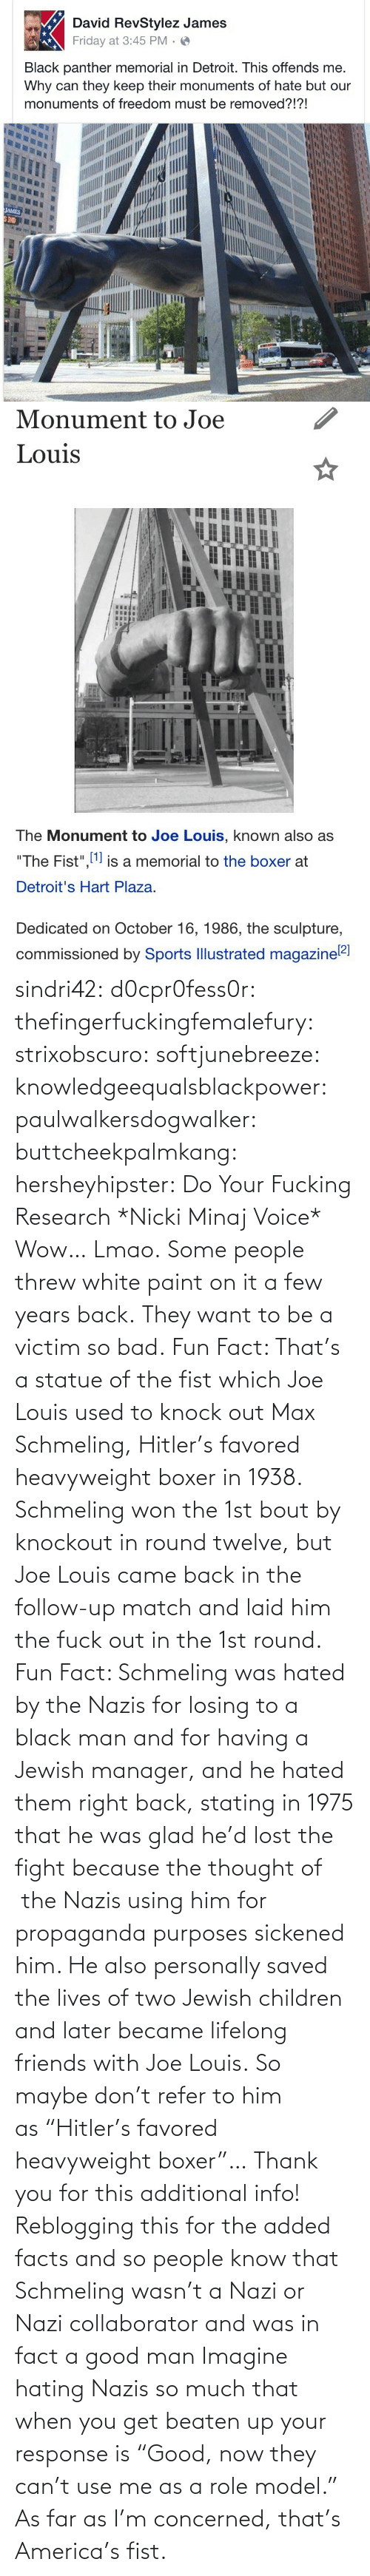 "get: sindri42:  d0cpr0fess0r:  thefingerfuckingfemalefury:  strixobscuro:  softjunebreeze:  knowledgeequalsblackpower:  paulwalkersdogwalker:   buttcheekpalmkang:   hersheyhipster:  Do Your Fucking Research *Nicki Minaj Voice*    Wow… Lmao.   Some people threw white paint on it a few years back.   They want to be a victim so bad.  Fun Fact: That's a statue of the fist which Joe Louis used to knock out Max Schmeling, Hitler's favored heavyweight boxer in 1938. Schmeling won the 1st bout by knockout in round twelve, but Joe Louis came back in the follow-up match and laid him the fuck out in the 1st round.  Fun Fact: Schmeling was hated by the Nazis for losing to a black man and for having a Jewish manager, and he hated them right back, stating in 1975 that he was glad he'd lost the fight because the thought of  the Nazis using him for propaganda purposes sickened him. He also personally saved the lives of two Jewish children and later became lifelong friends with Joe Louis. So maybe don't refer to him as ""Hitler's favored heavyweight boxer""…  Thank you for this additional info! Reblogging this for the added facts and so people know that Schmeling wasn't a Nazi or Nazi collaborator and was in fact a good man   Imagine hating Nazis so much that when you get beaten up your response is ""Good, now they can't use me as a role model.""  As far as I'm concerned, that's America's fist."